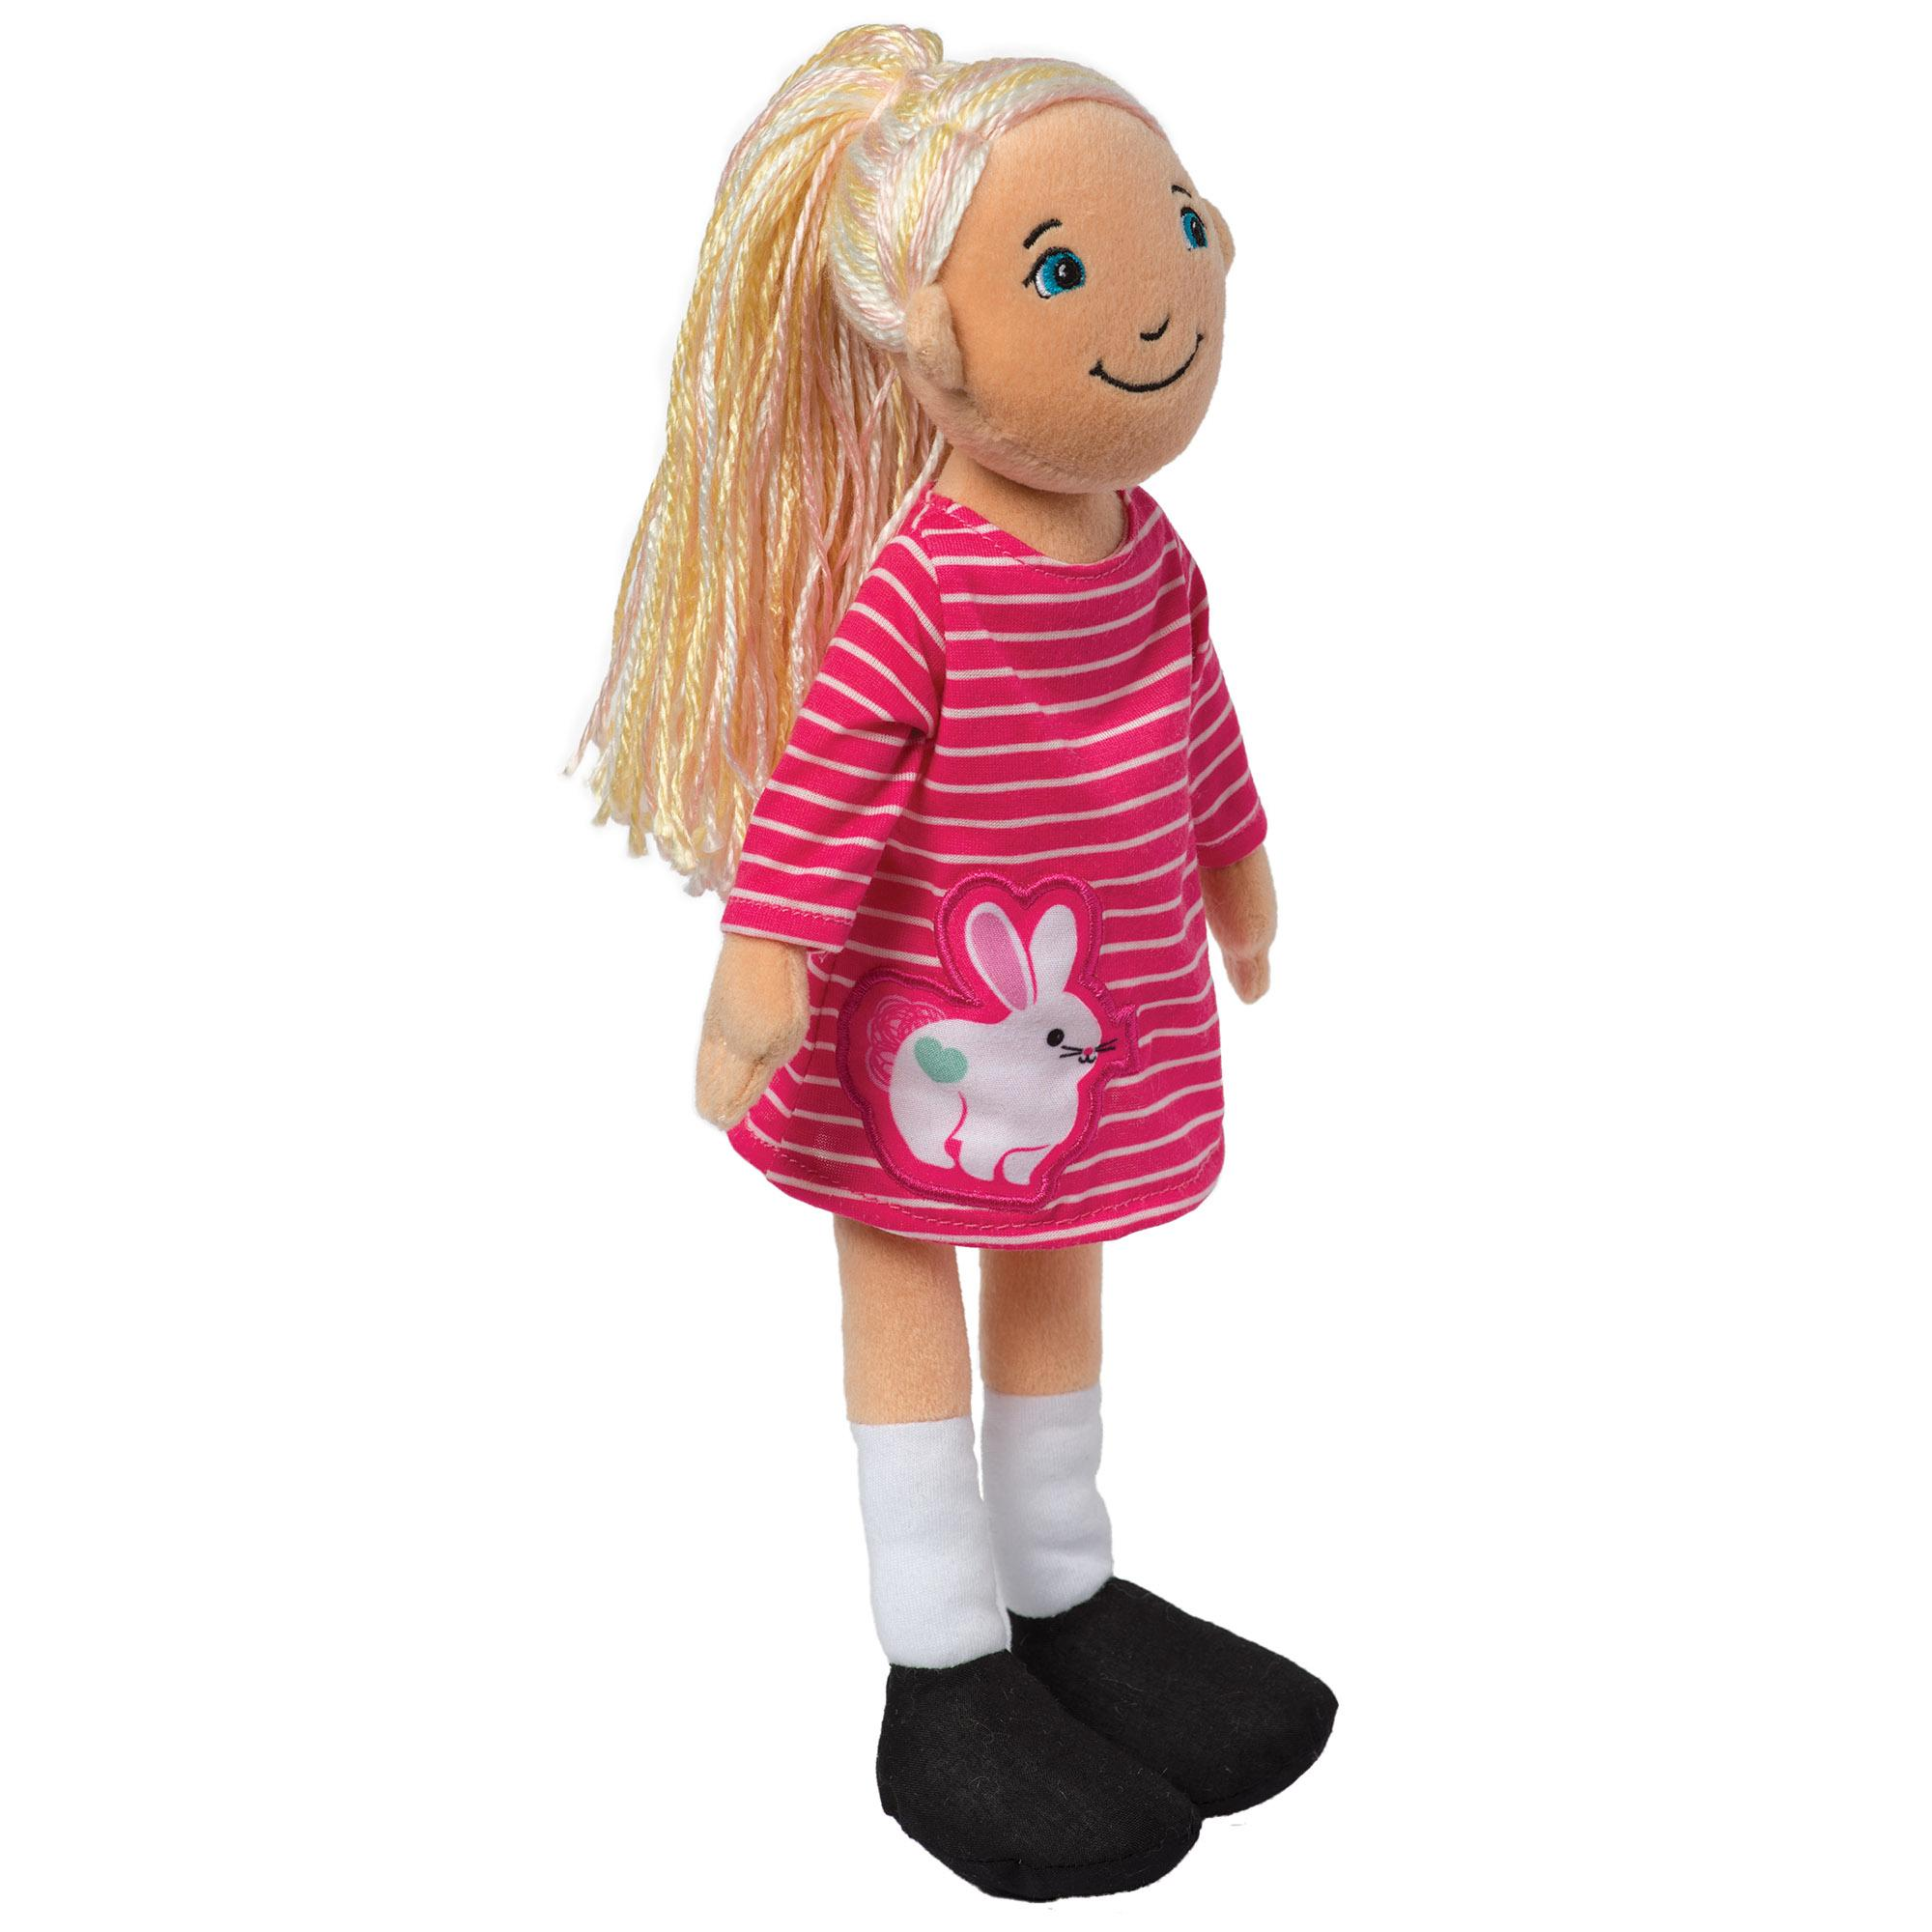 Delightful Decorative Doll Elegant Appearance Fashion, Character, Play Dolls